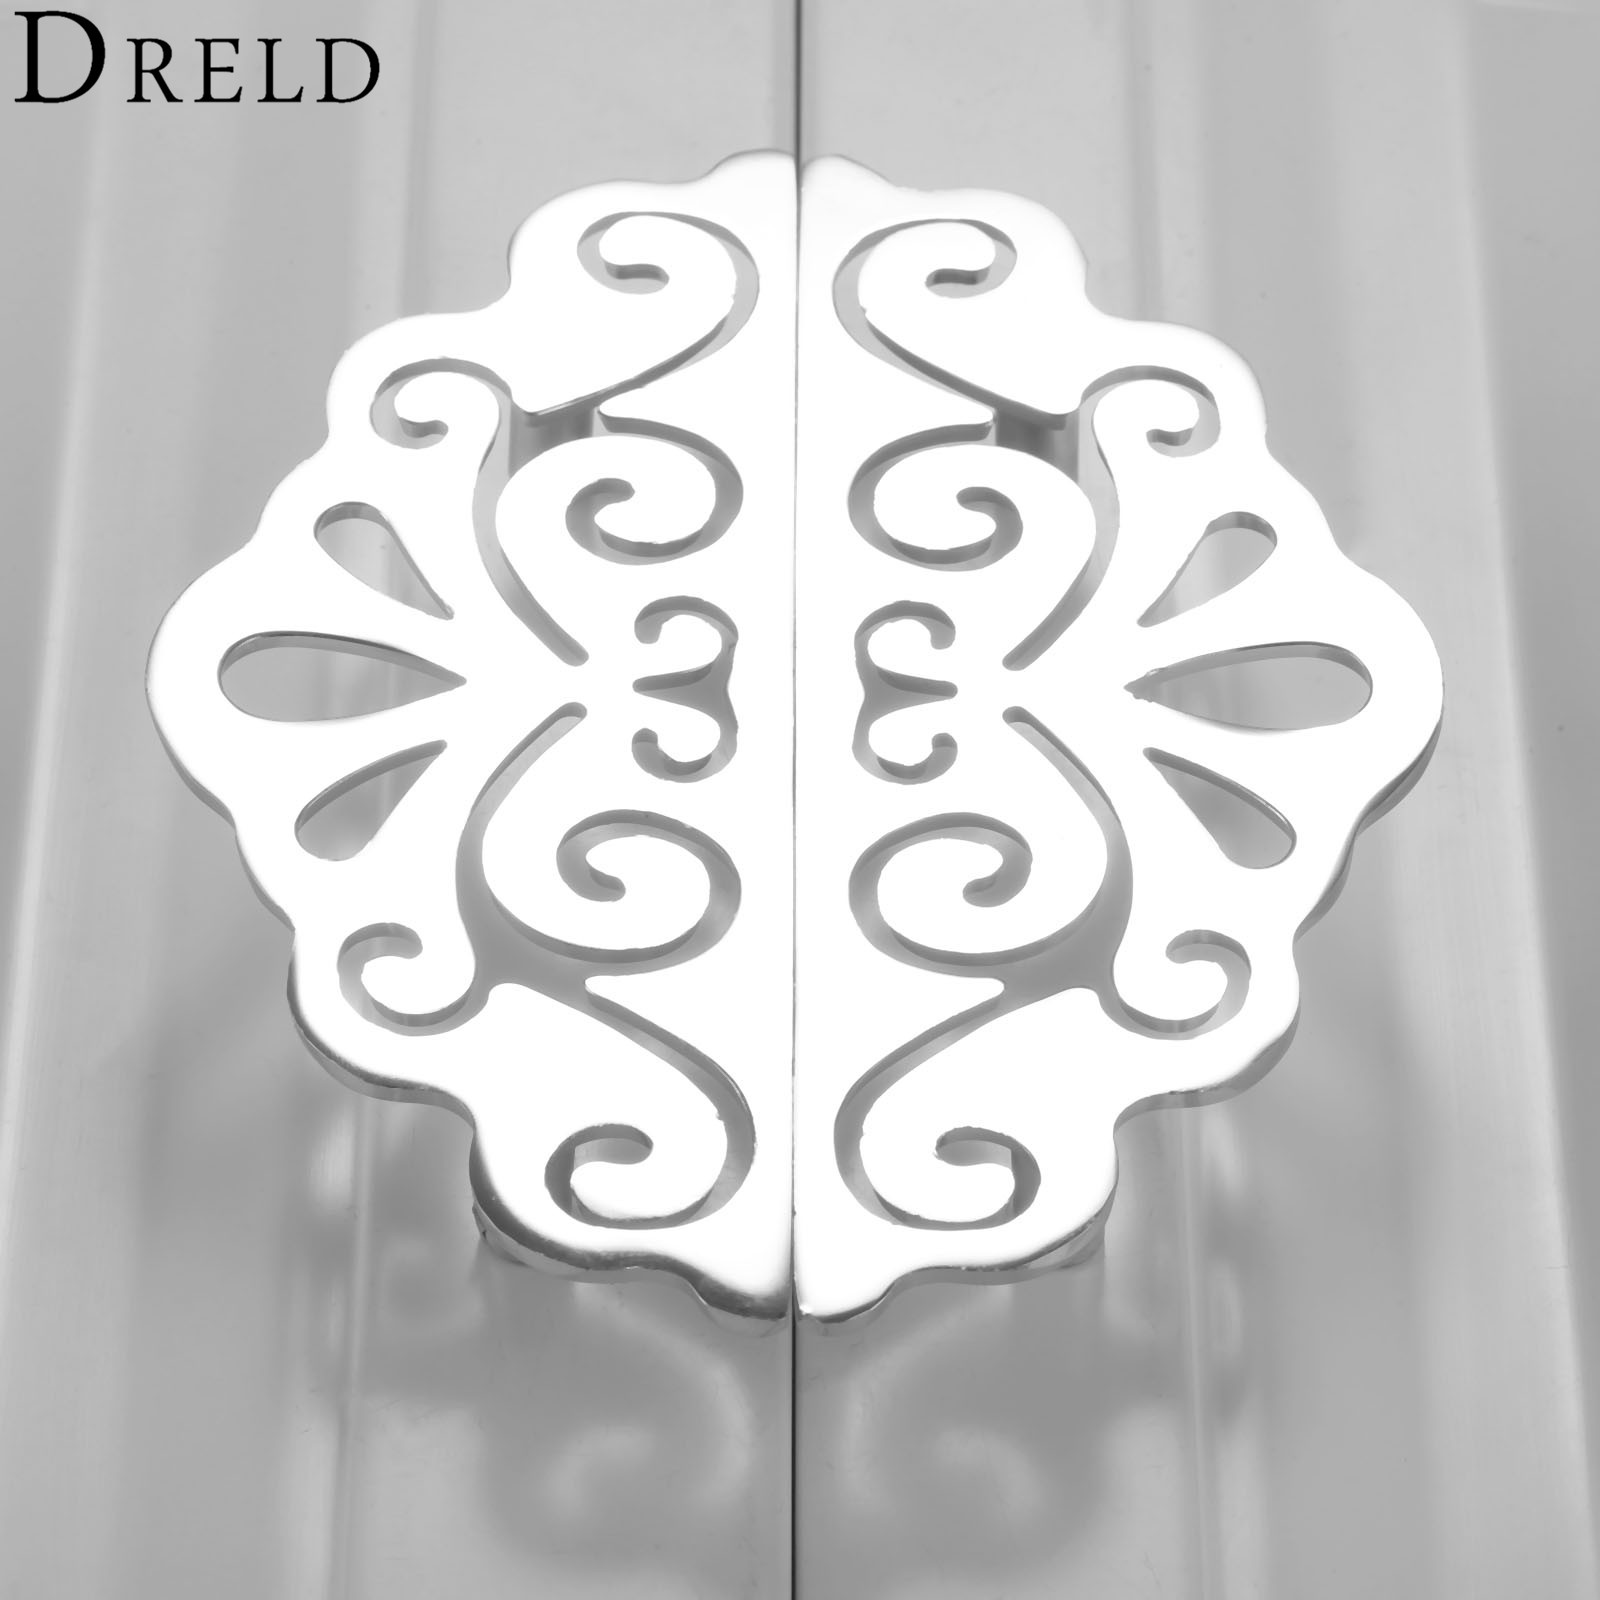 DRELD 2Pcs 96mm European-style Furniture Handle Cabinet Knobs and Handles Door Cupboard Kitchen Pull Handles Furniture Hardware furniture drawer handles wardrobe door handle and knobs cabinet kitchen hardware pull gold silver long hole spacing c c 96 224mm